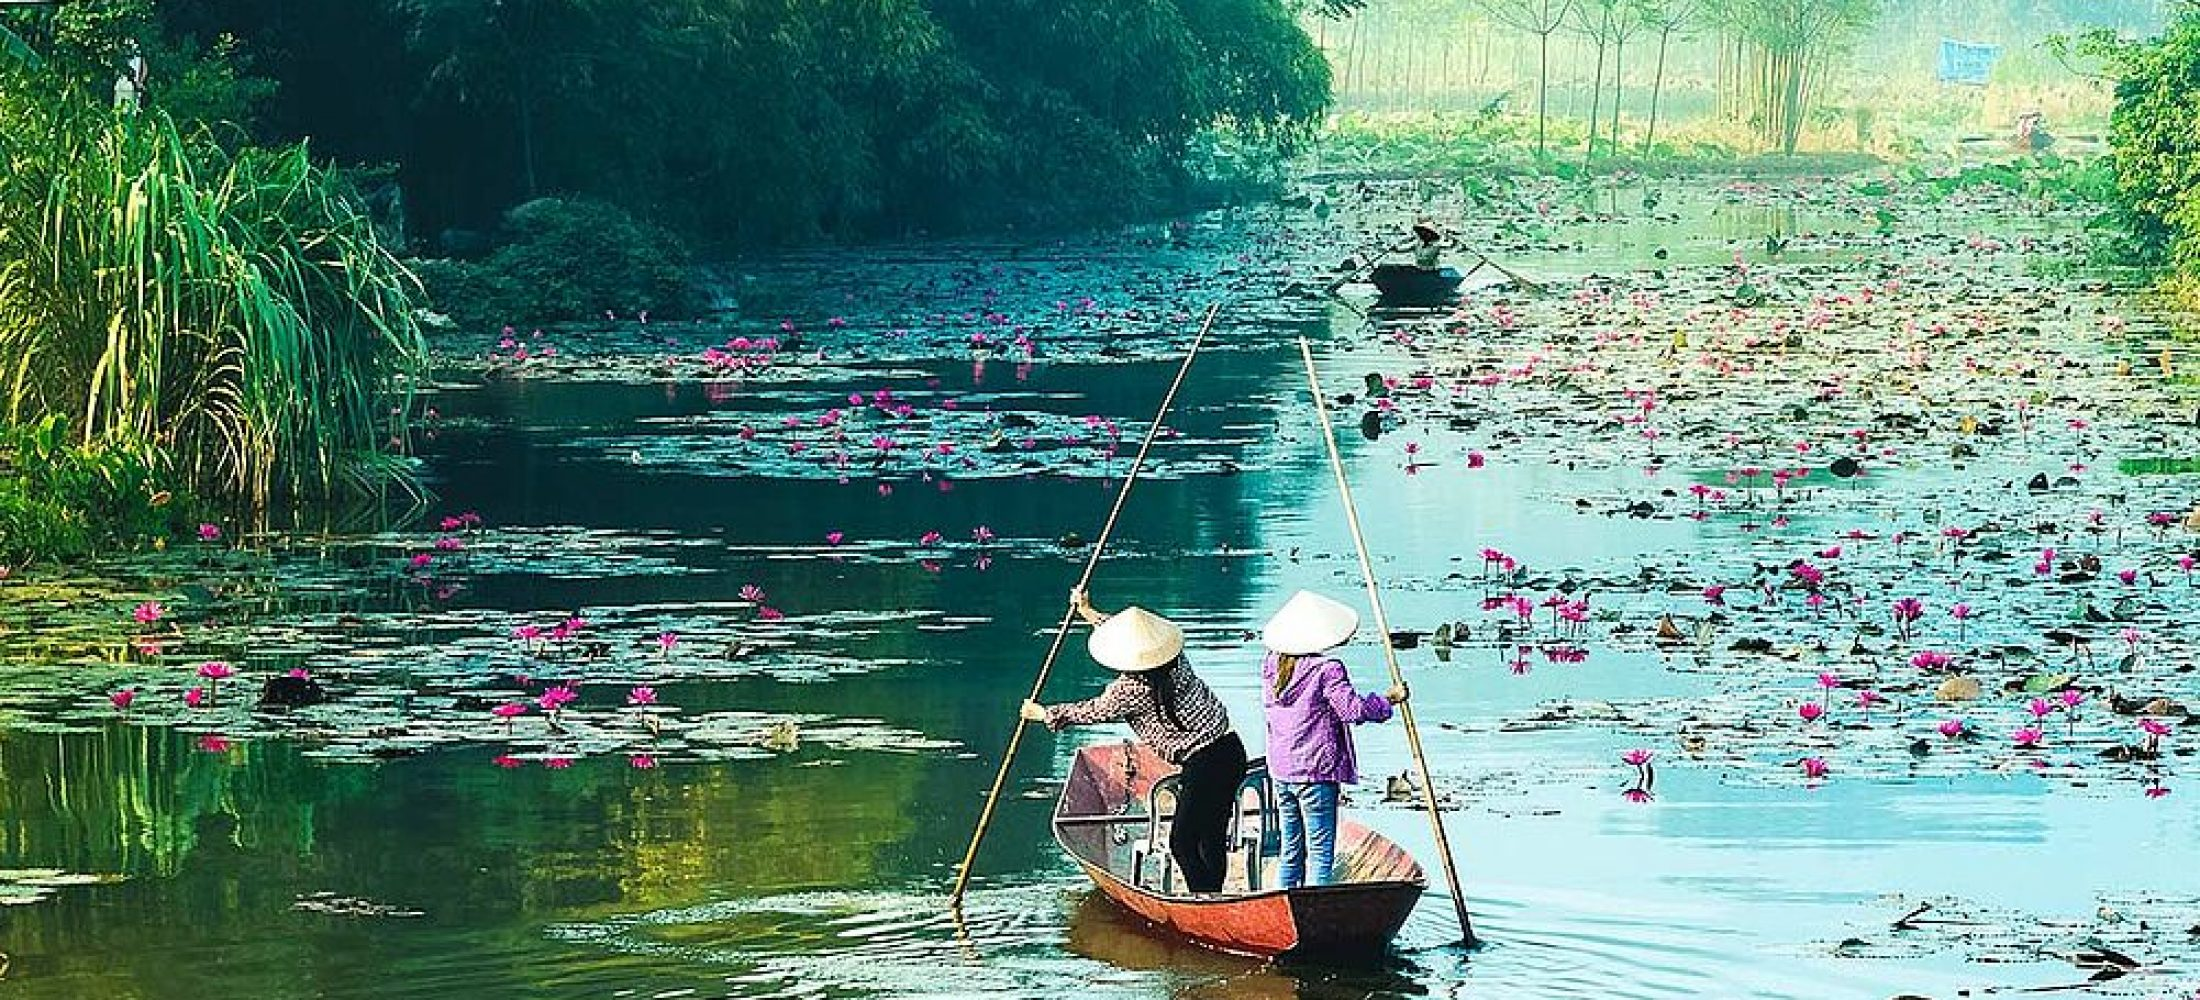 On the outskirts of Hanoi